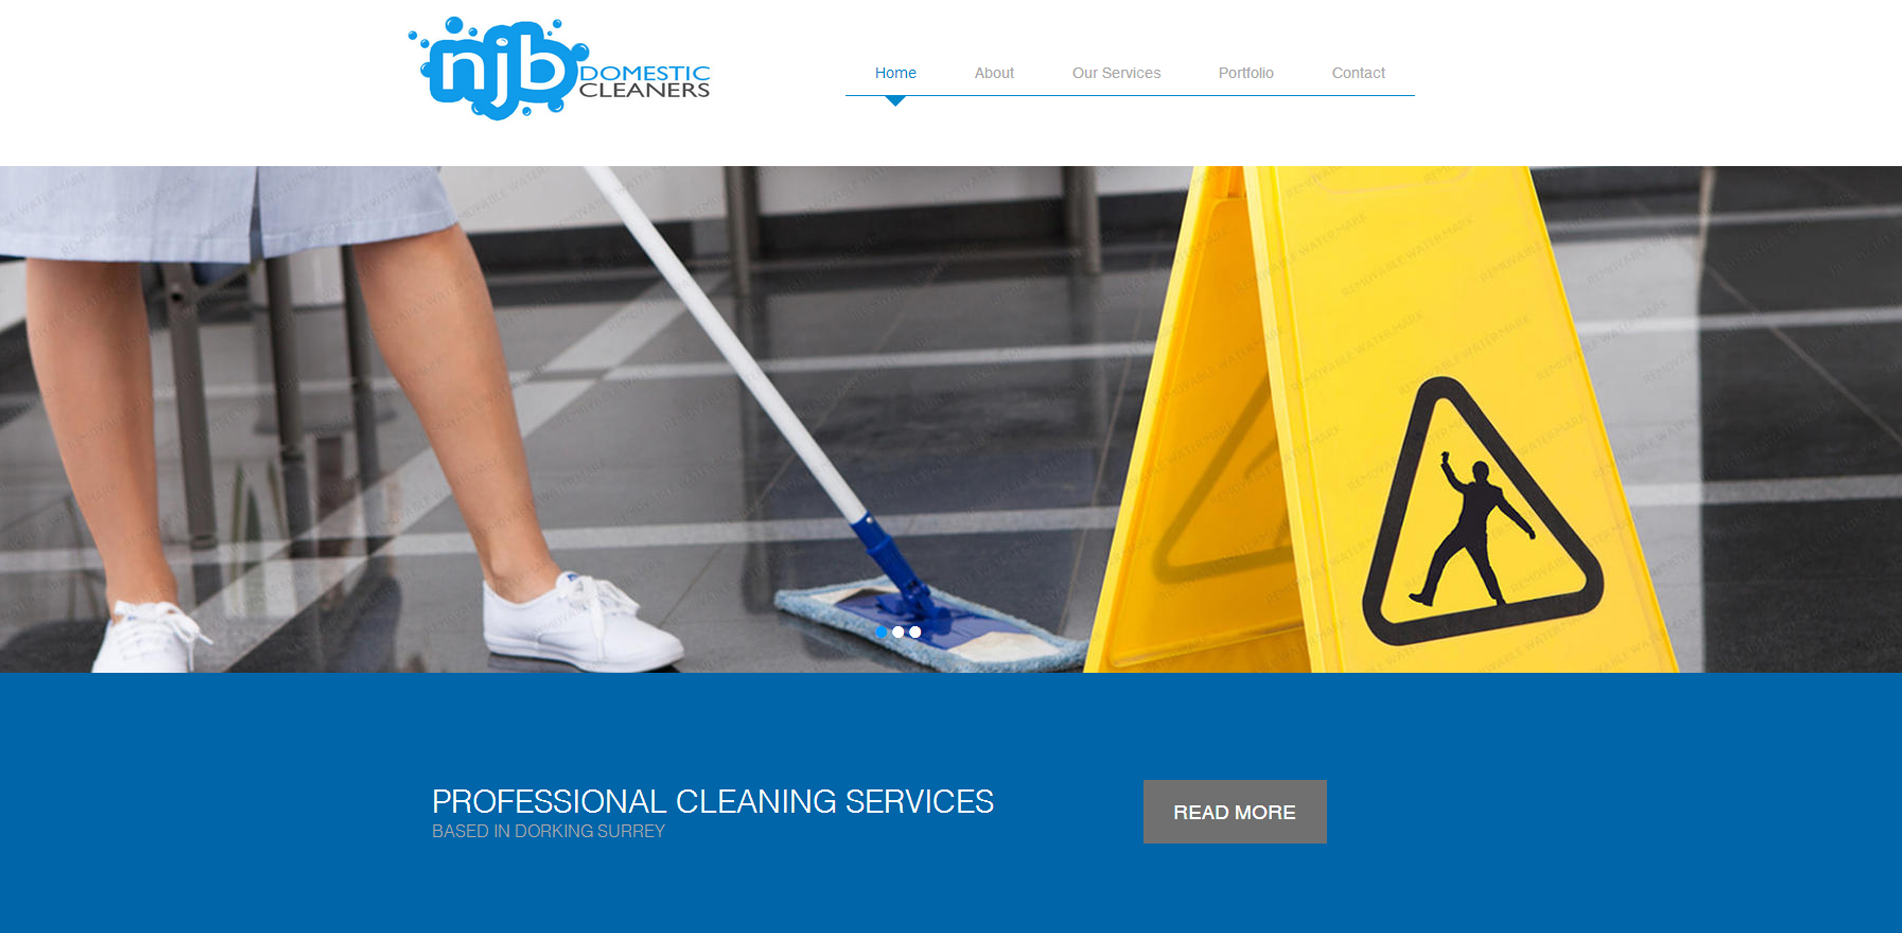 NJB Domestic Cleaners